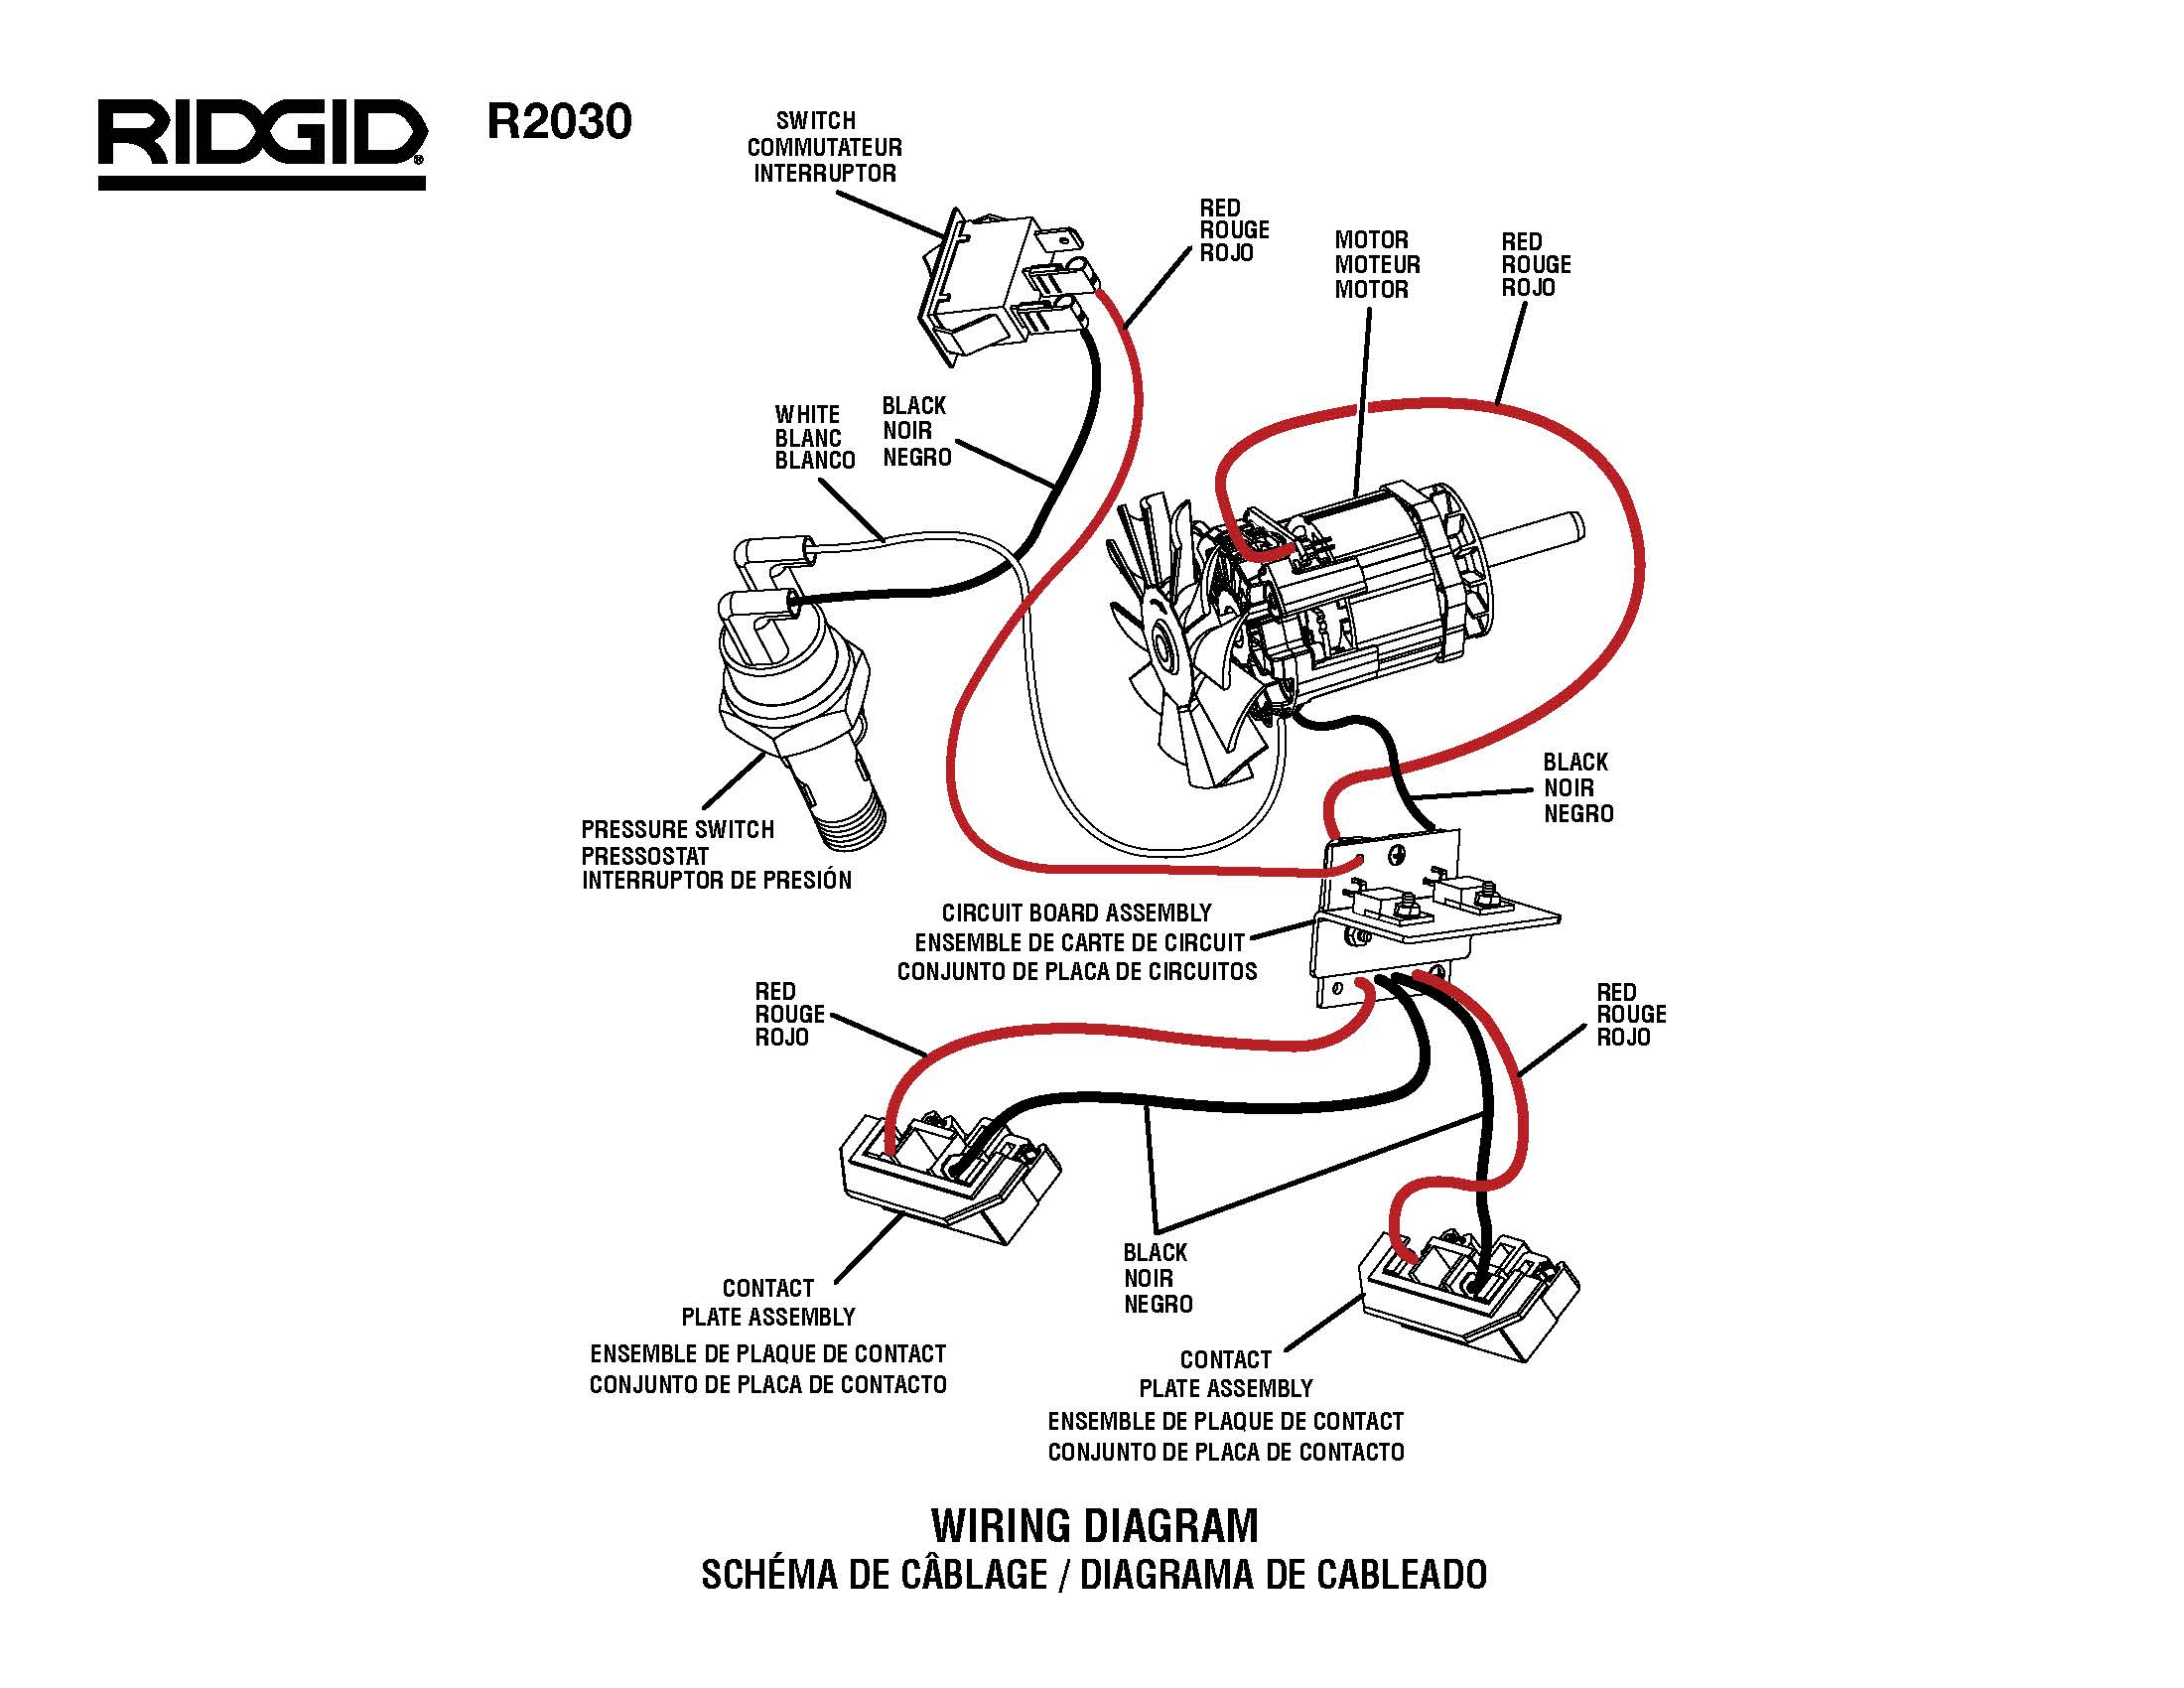 [WRG-7792] Ridgid Switch Wiring Diagram